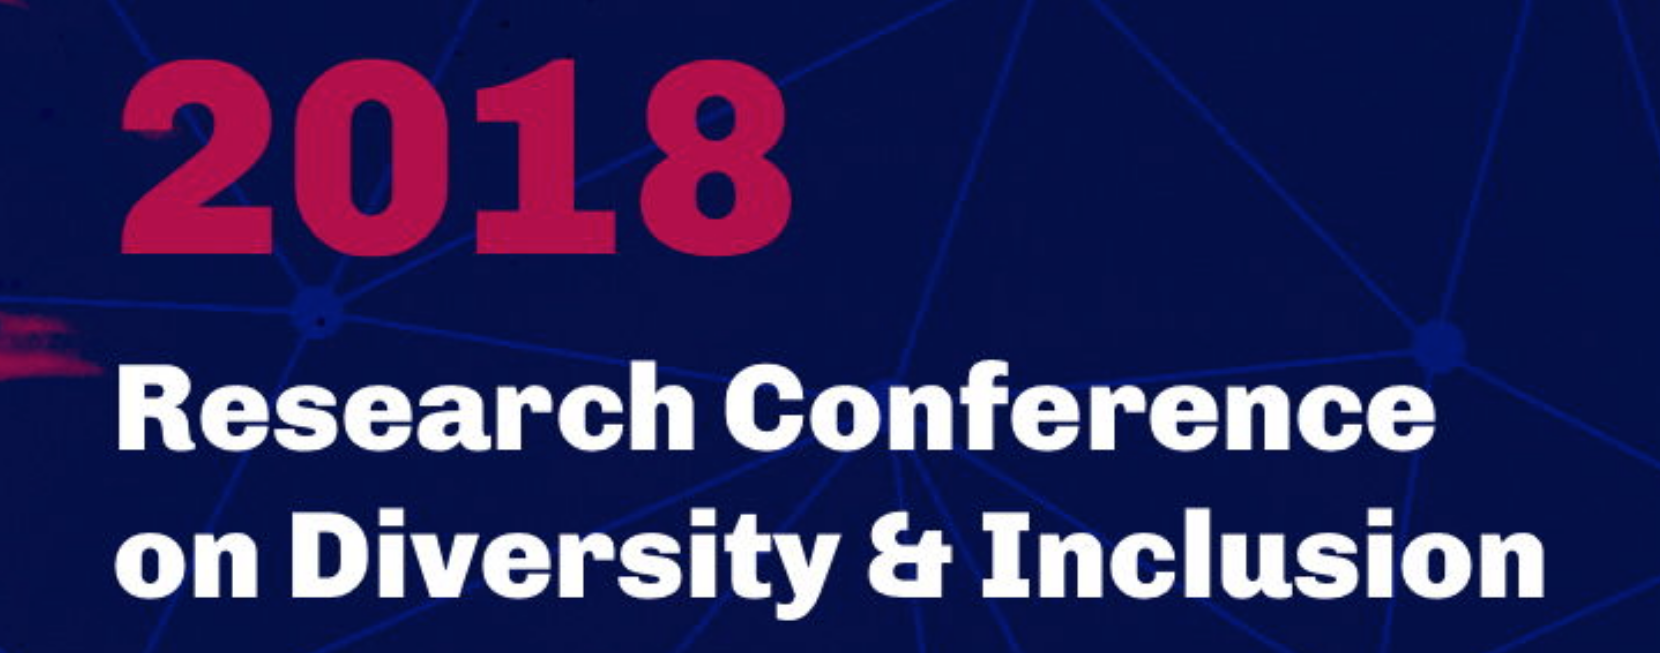 2018 Research Conference on Diversity & Inclusion logo